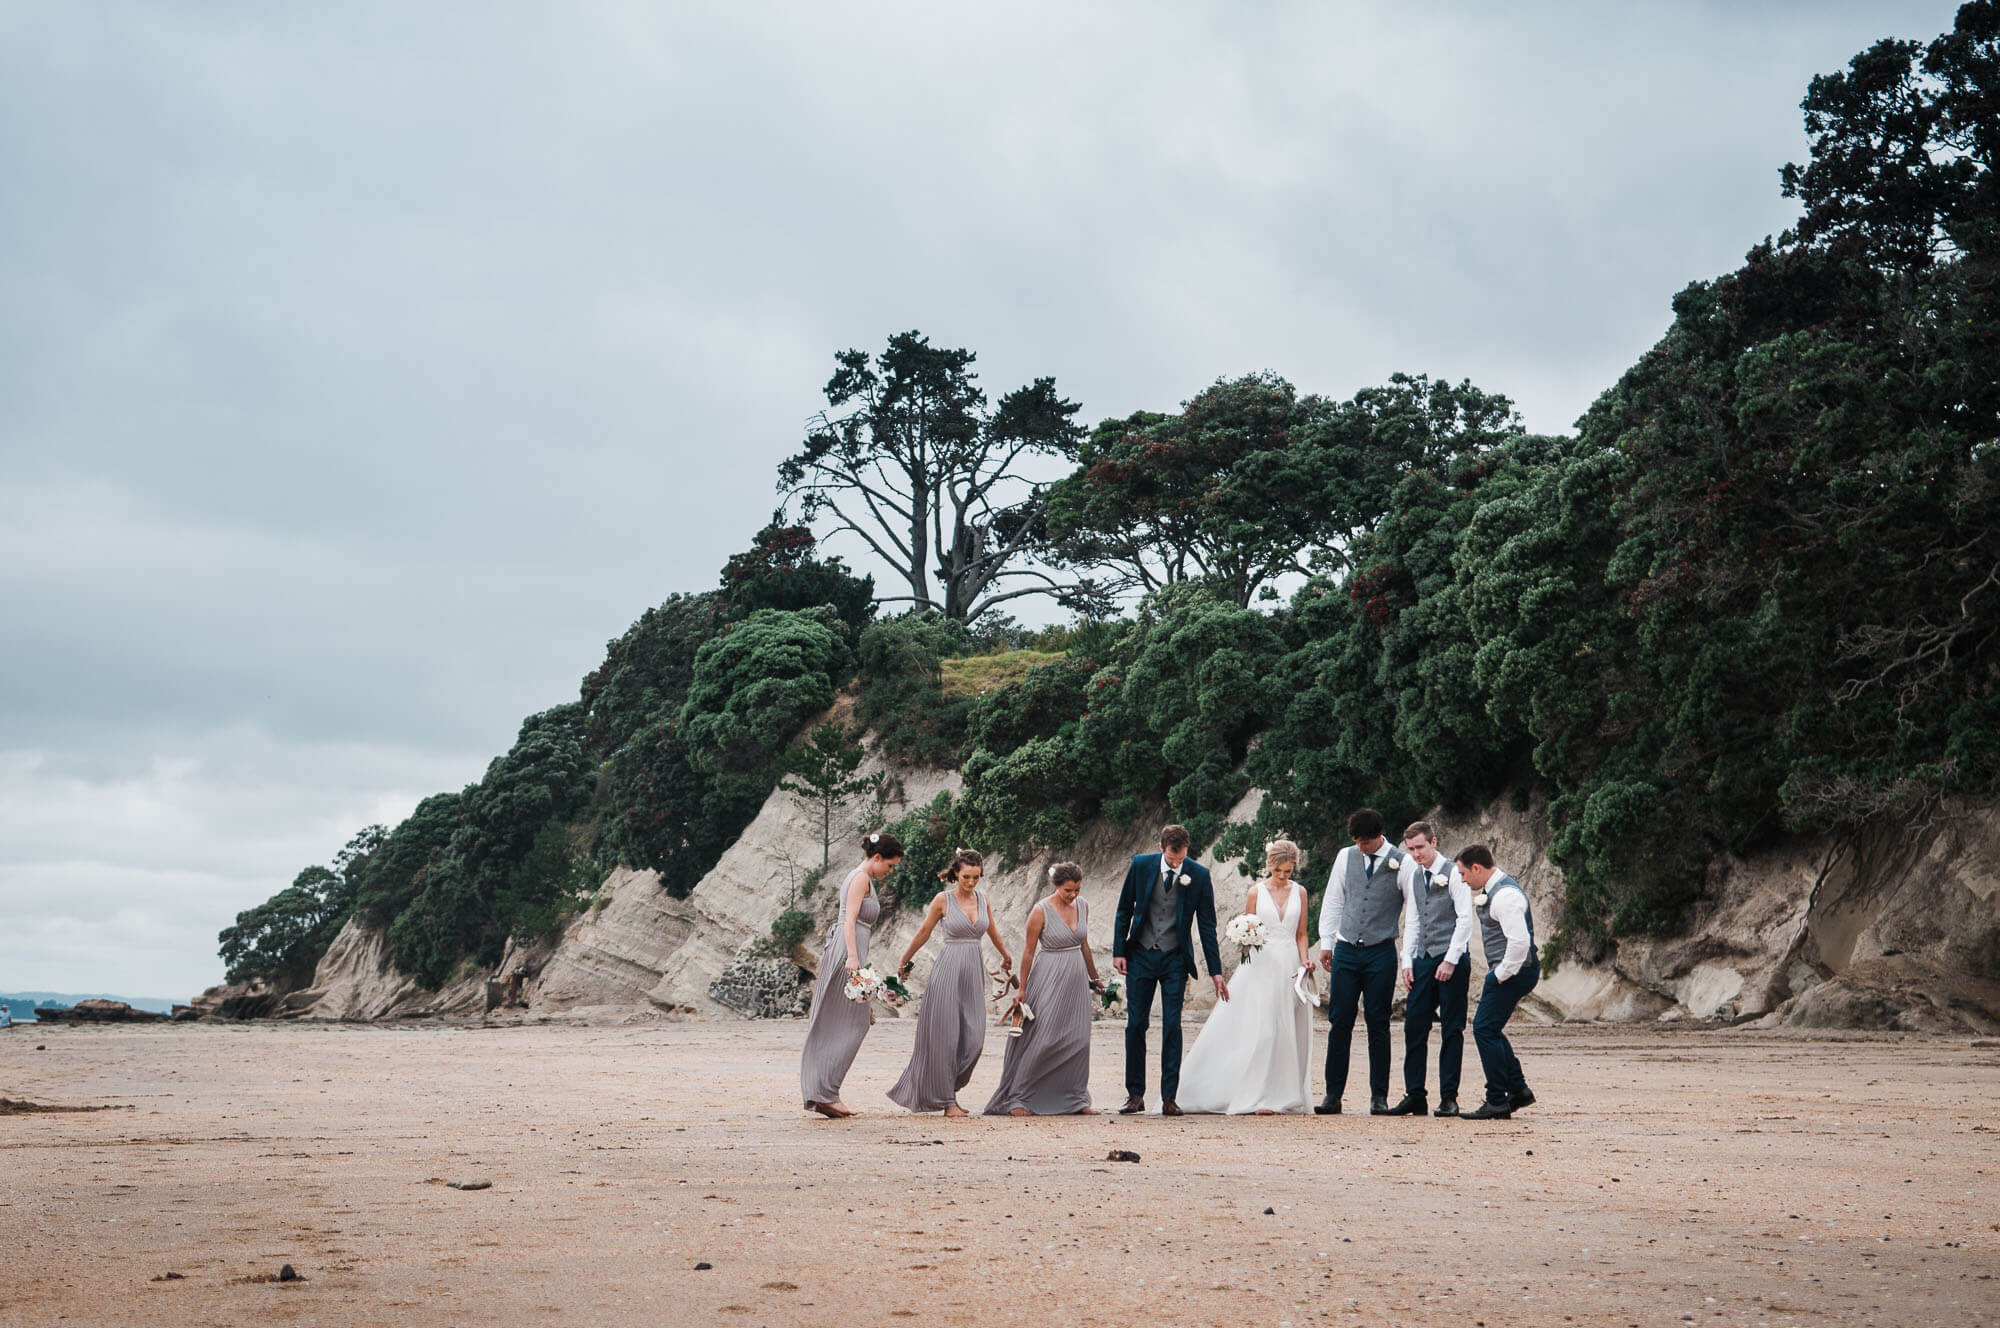 bridal-party-walking-along-beach-relaxed-and-natural-wedding-photography.jpg